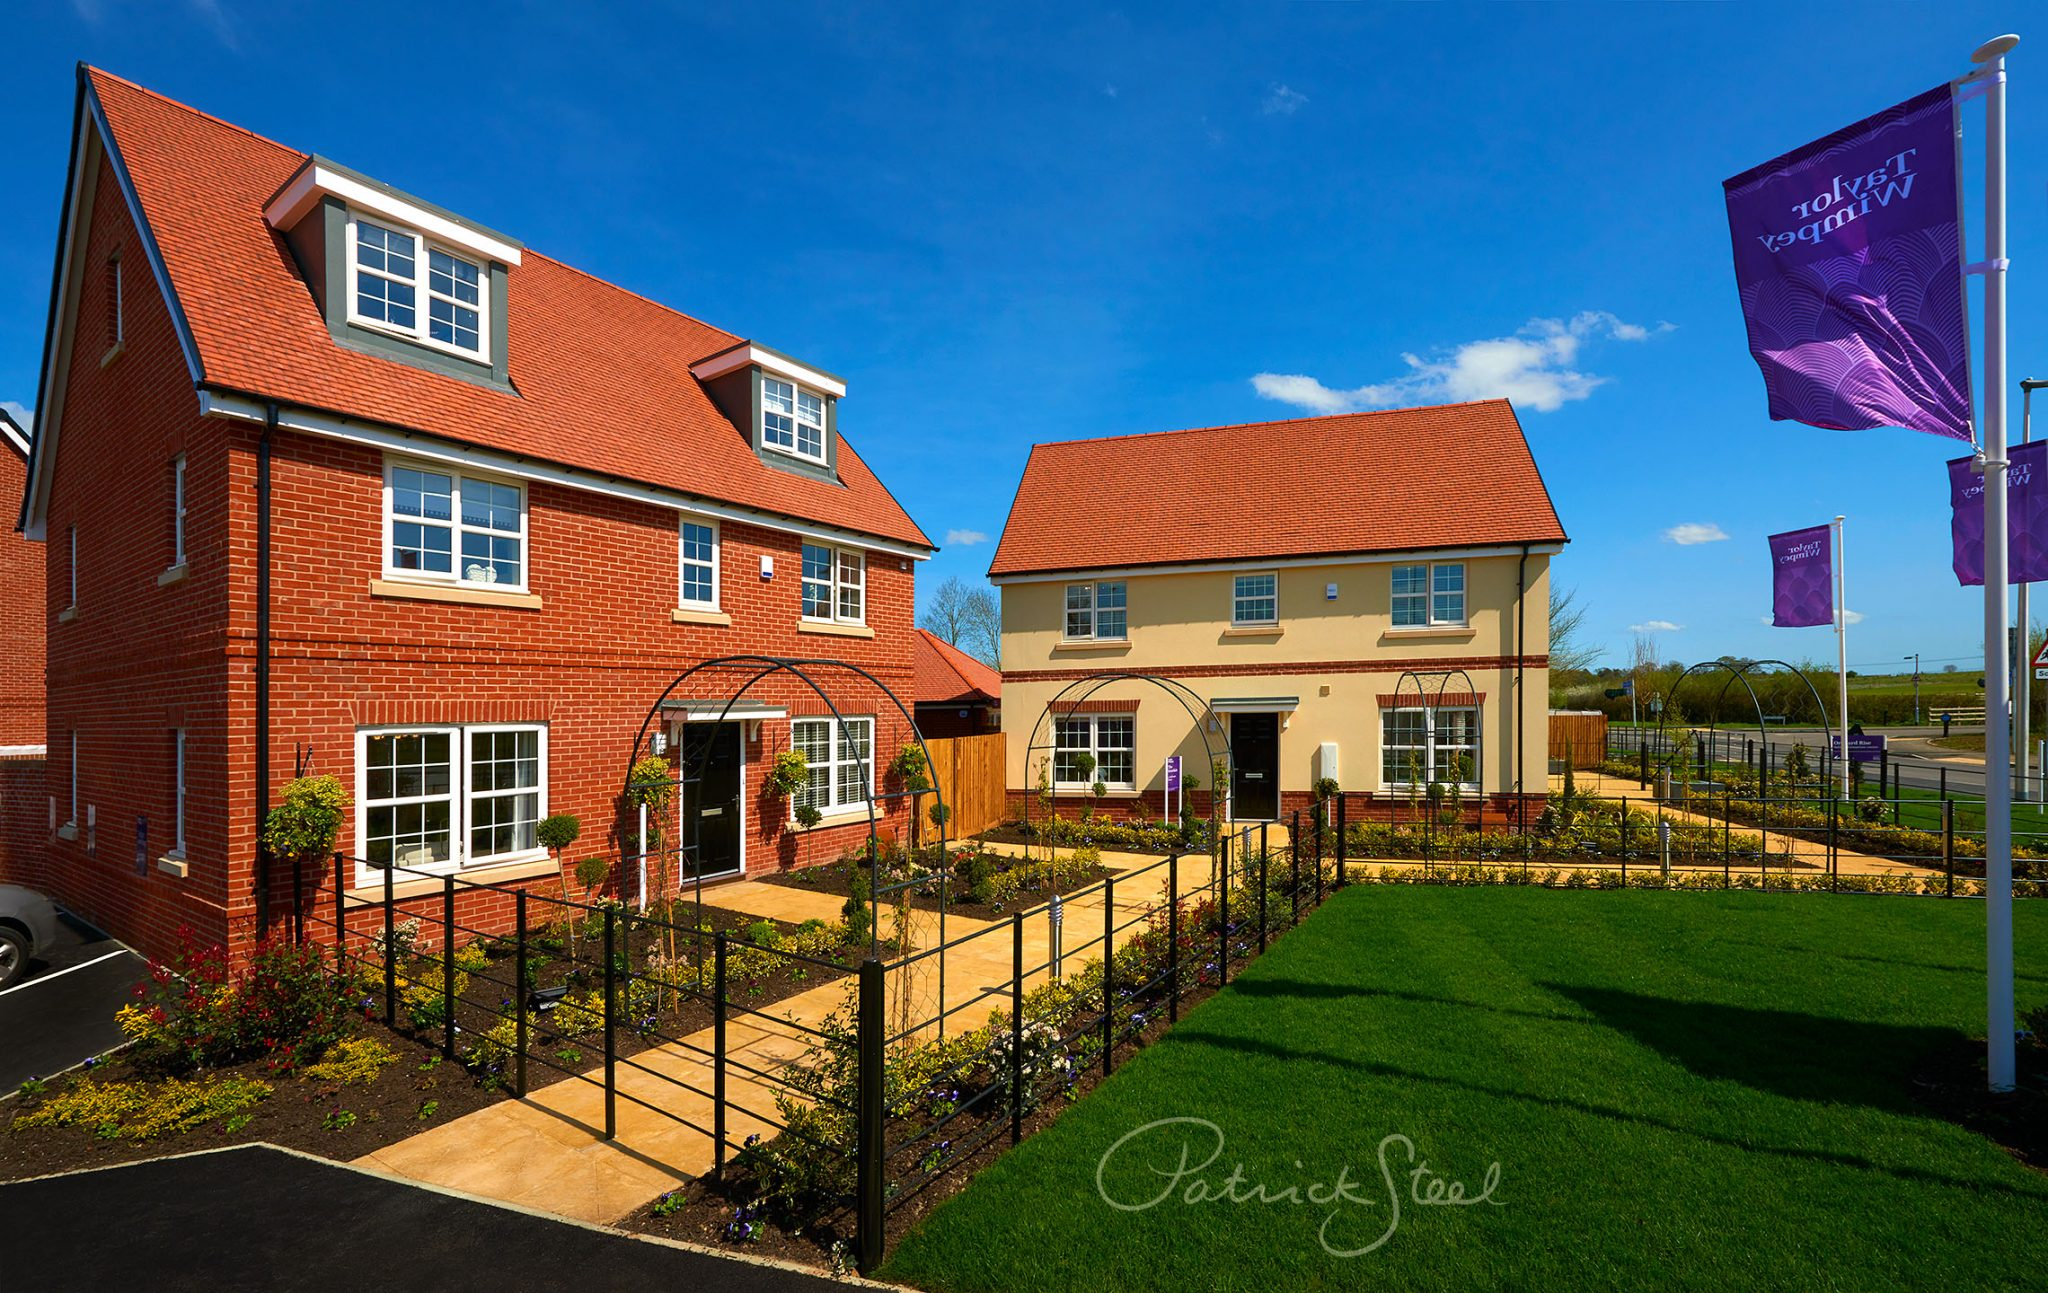 Mr Steel | Orchard Rise | Taylor Wimpey